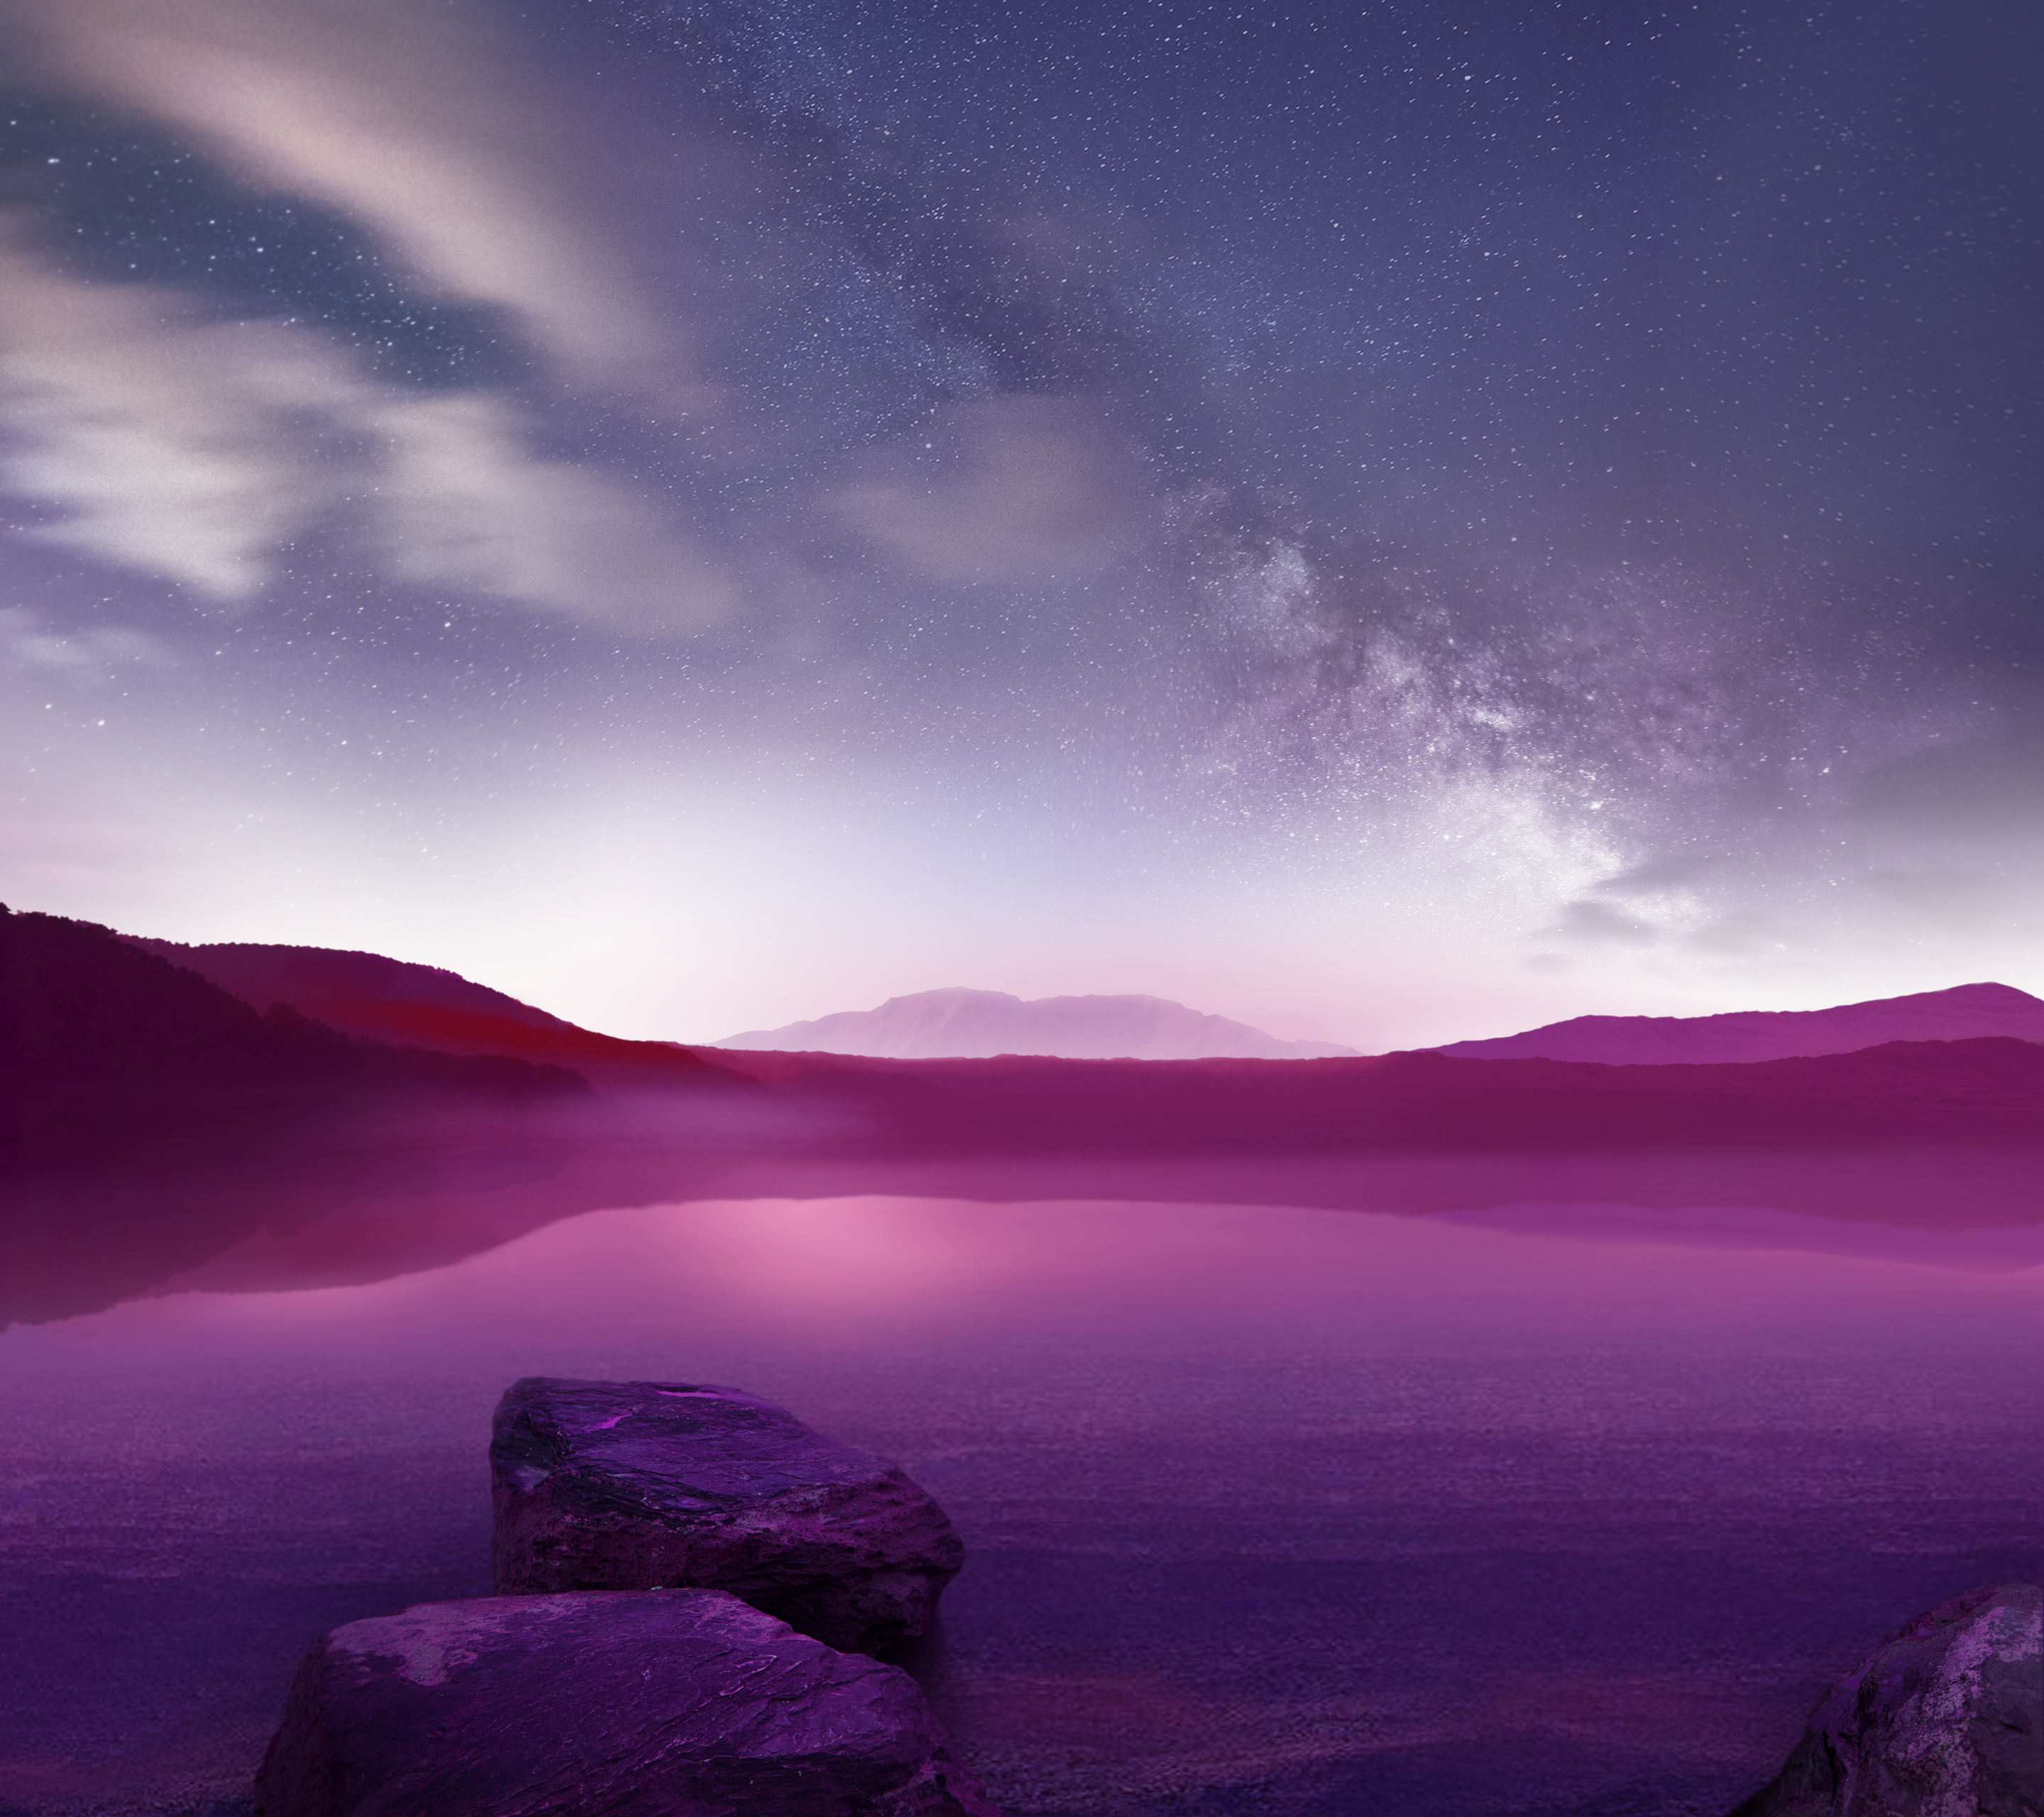 Wallpaper download all - Download These Lg G3 Wallpapers For Your Phone